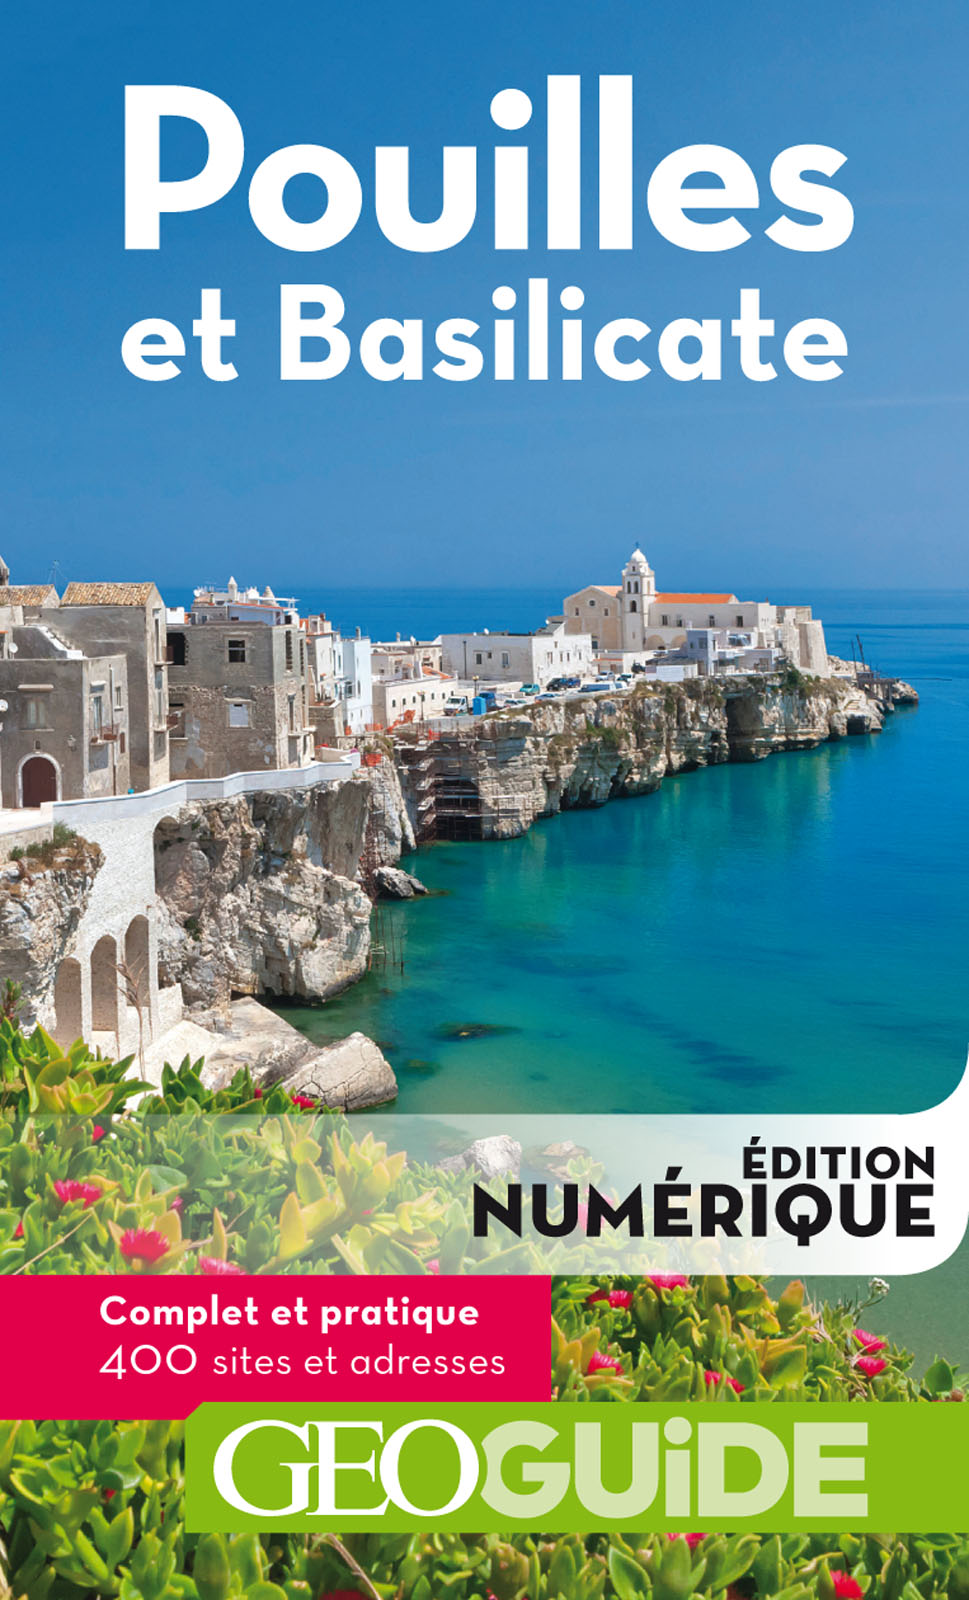 GEOguide Pouilles et Basilicate | Collectif Gallimard Loisirs,